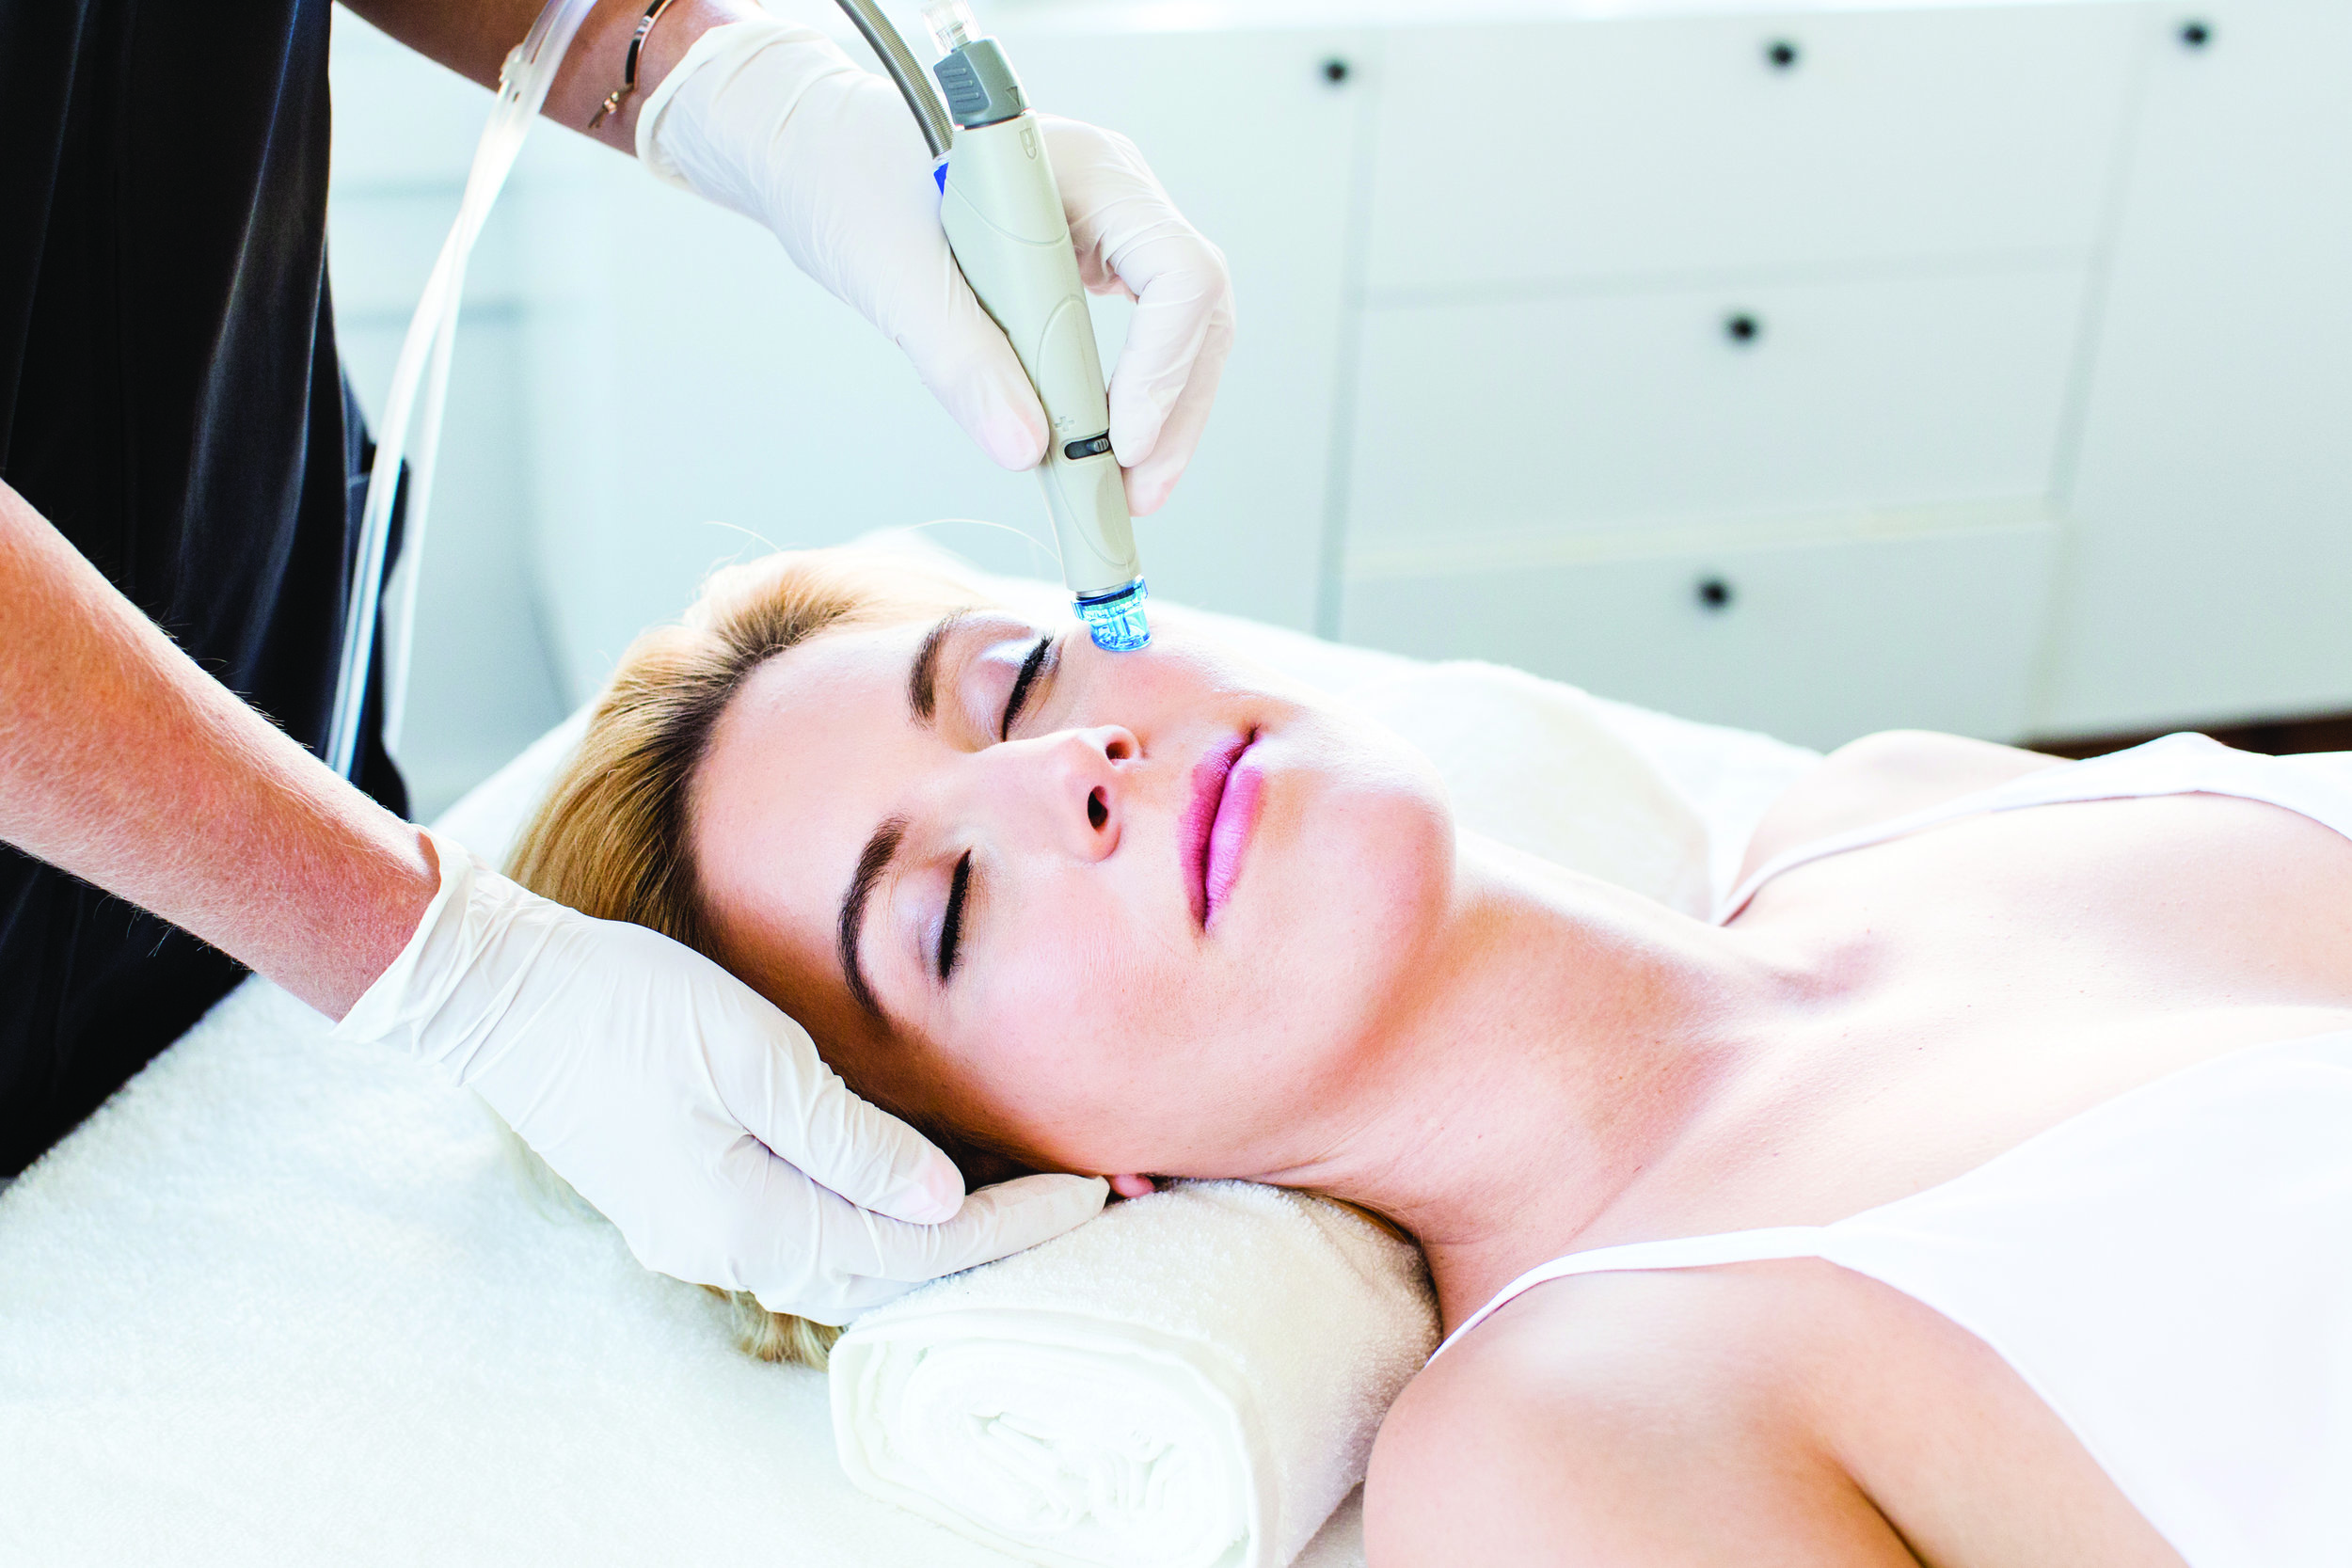 Hydrafacial   HydraFacial regularly appears in magazines and mentioned by celebrities.  HydraFacial is a multi-step treatment that uses patented technology to cleanse, exfoliate, extract and treat the skin. During the treatment dead skin cells and impurities are removed and the skin is hydrated with antioxidants & peptides. Unlike other treatments, HydraFacial can be had as often as weekly or monthly to achieve a fast and long lasting result.  Whether you're simply looking to maintain the healthy condition of your skin or are concerned about acne or pigmentation, HydraFacial can be catered to your needs.  For prices click  here .